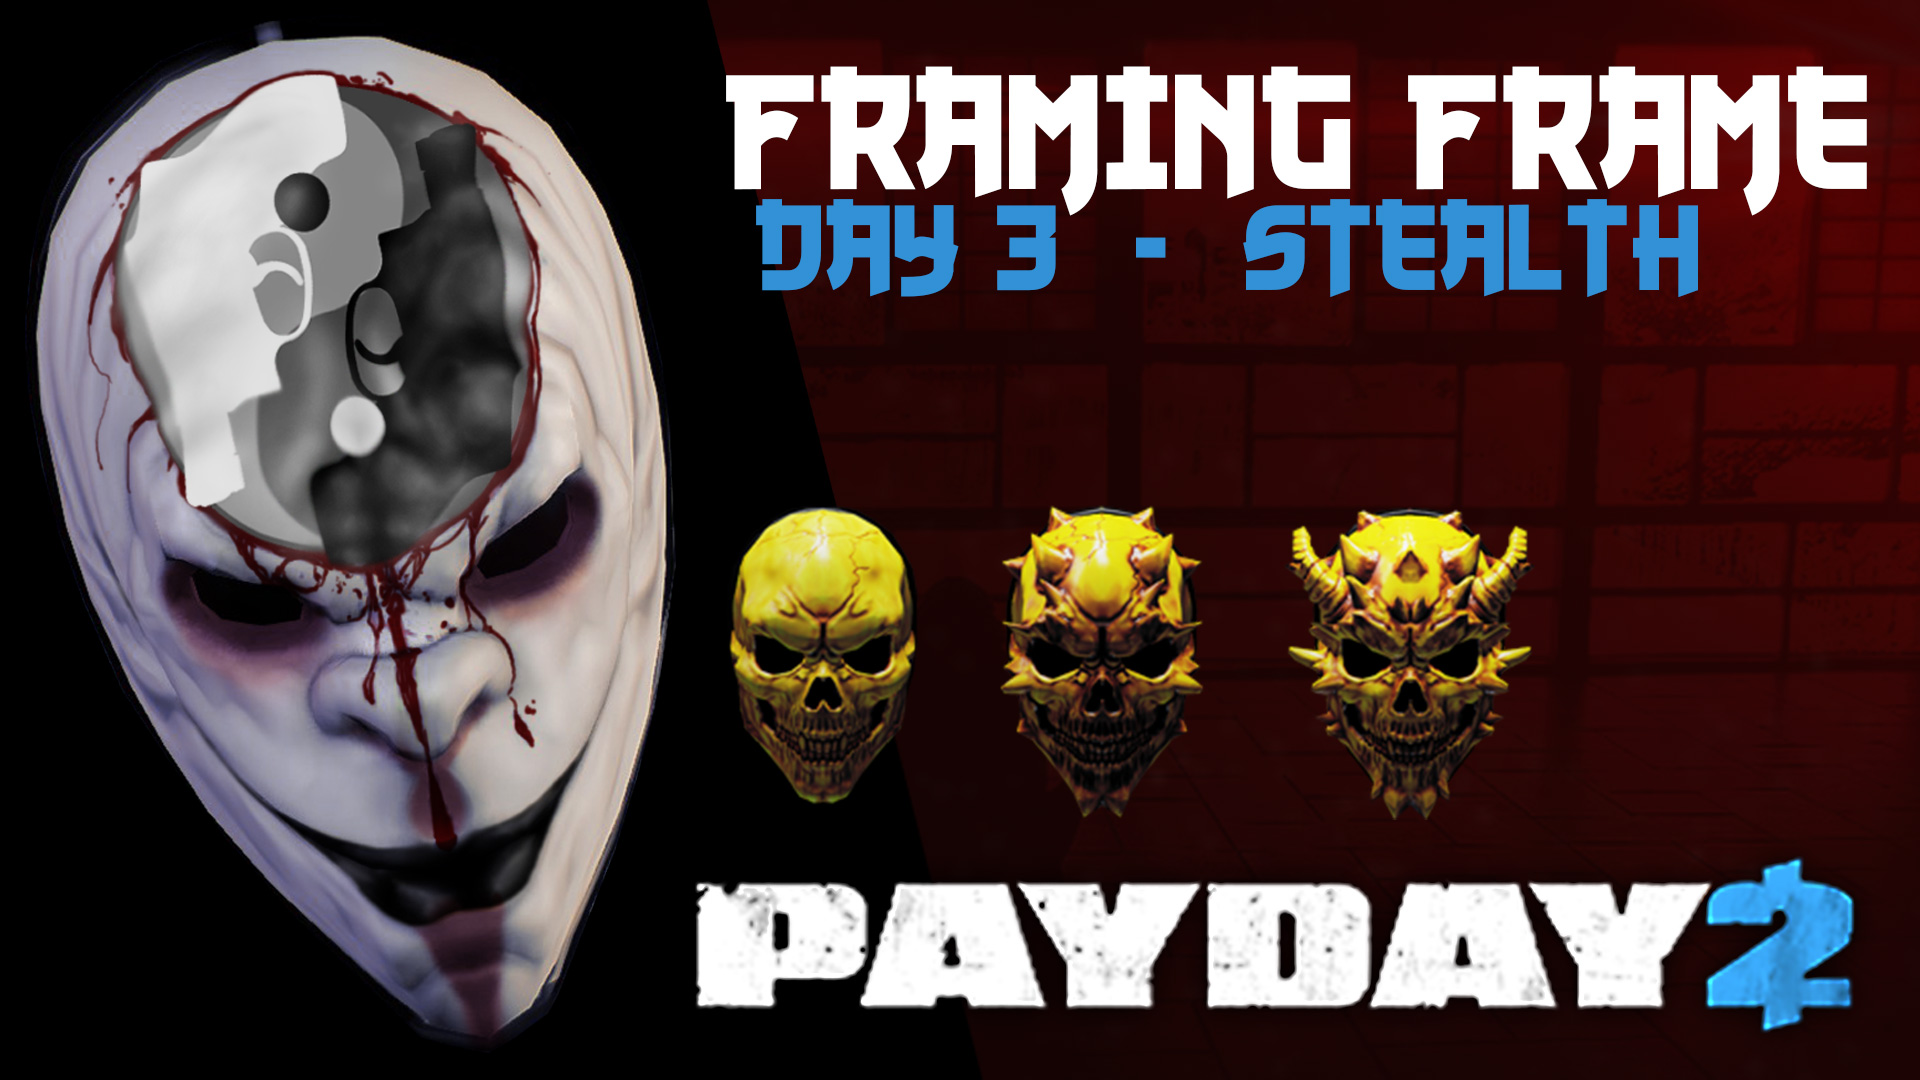 Payday 2: Framing Frame – Day 3 – Stealth Overkill